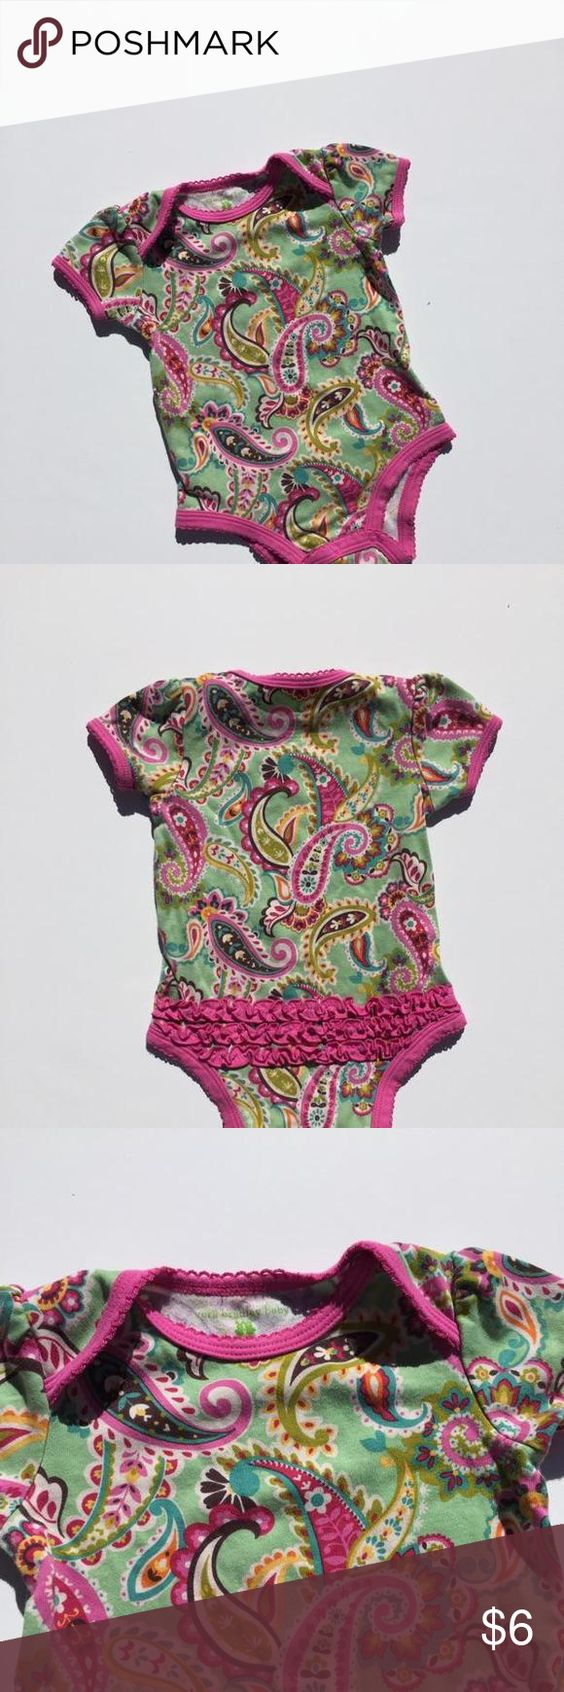 Vera Bradley Baby Onsie I love the color combination in this design! Mint background with bright pink edging. Material is high quality and super soft. Size is 9-12 months but it still fit my daughter when she was in 18 month clothes. Dresses